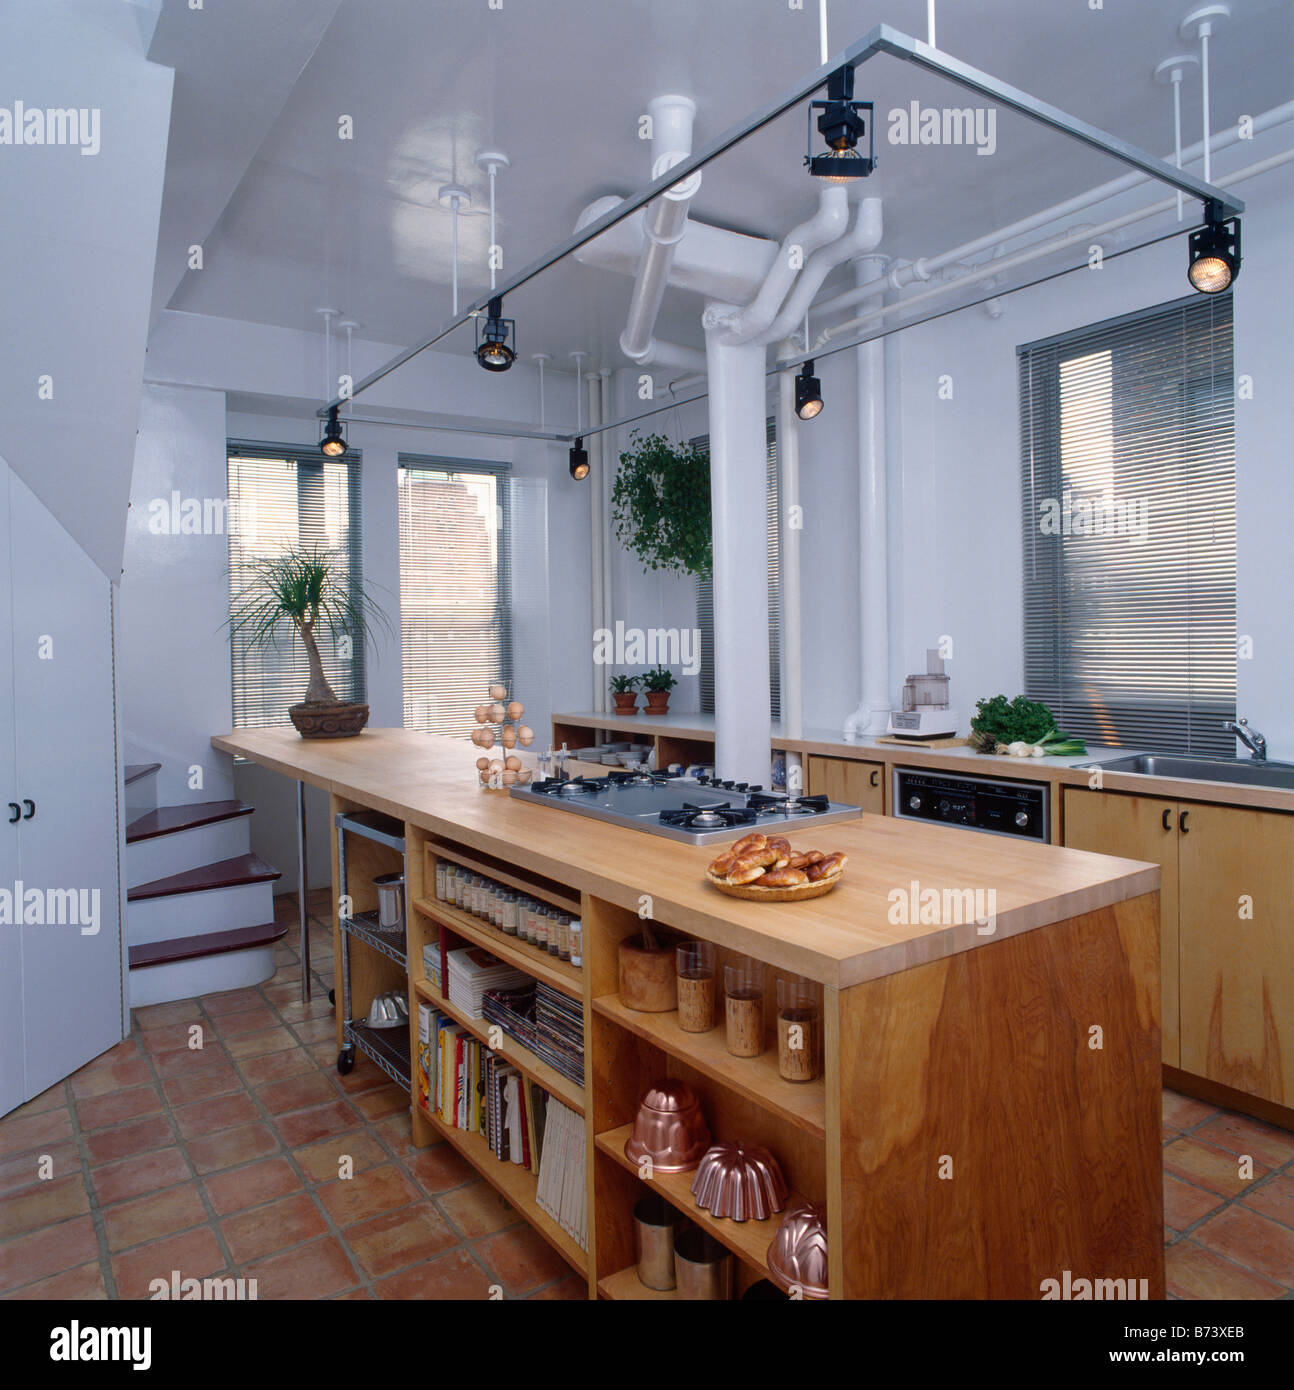 Track Lighting Above Wooden Peninsular Unit Wityh Shelving In Modern White Kitchen Stock Photo Alamy